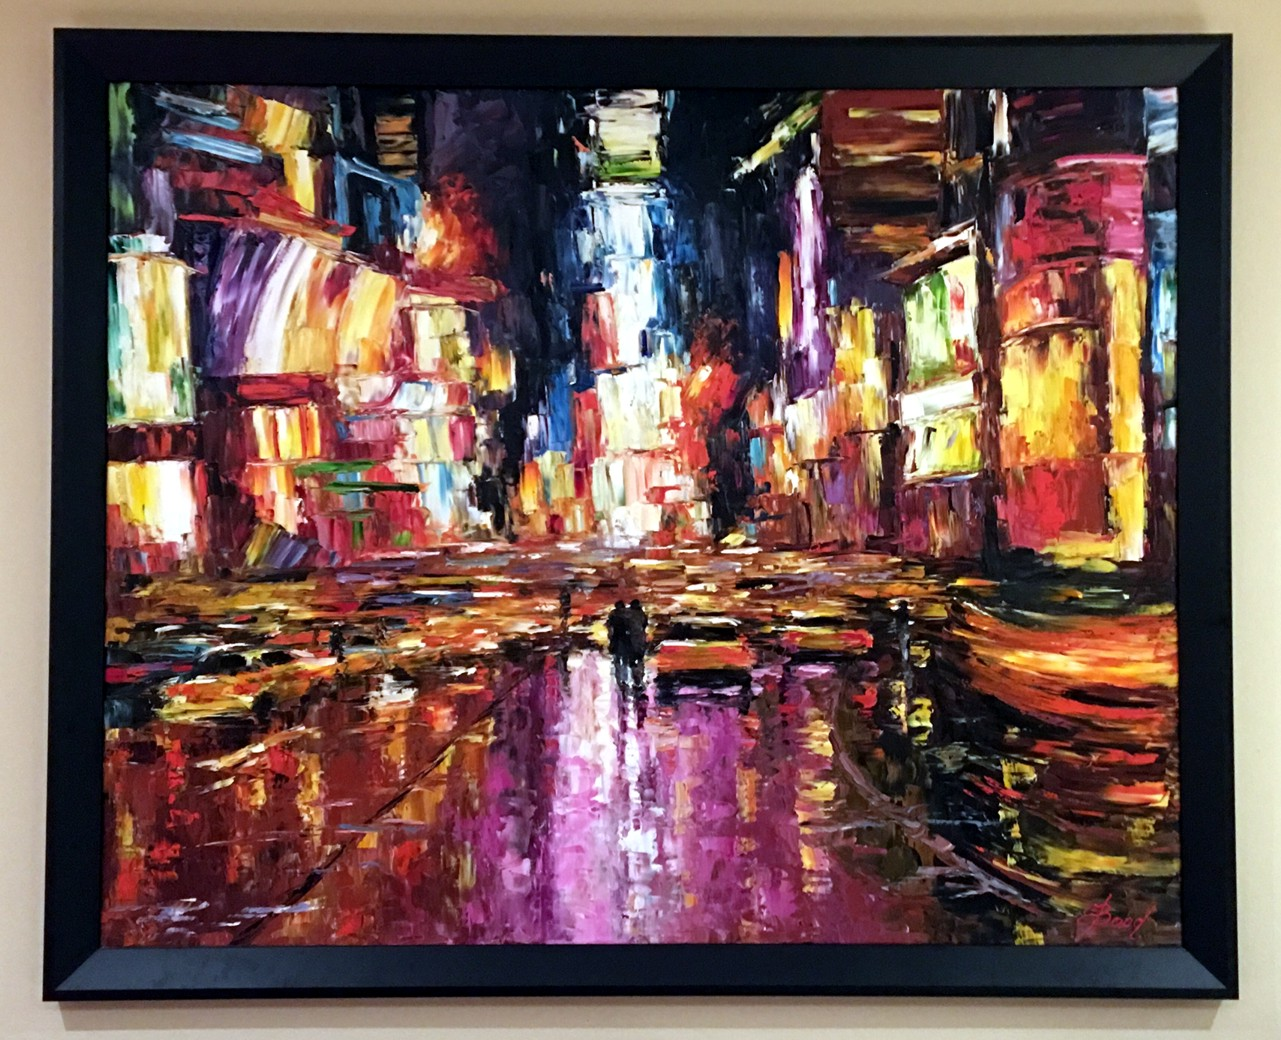 Elena Bond - ROMANCING NEW YORK - Limited Edition on Canvas